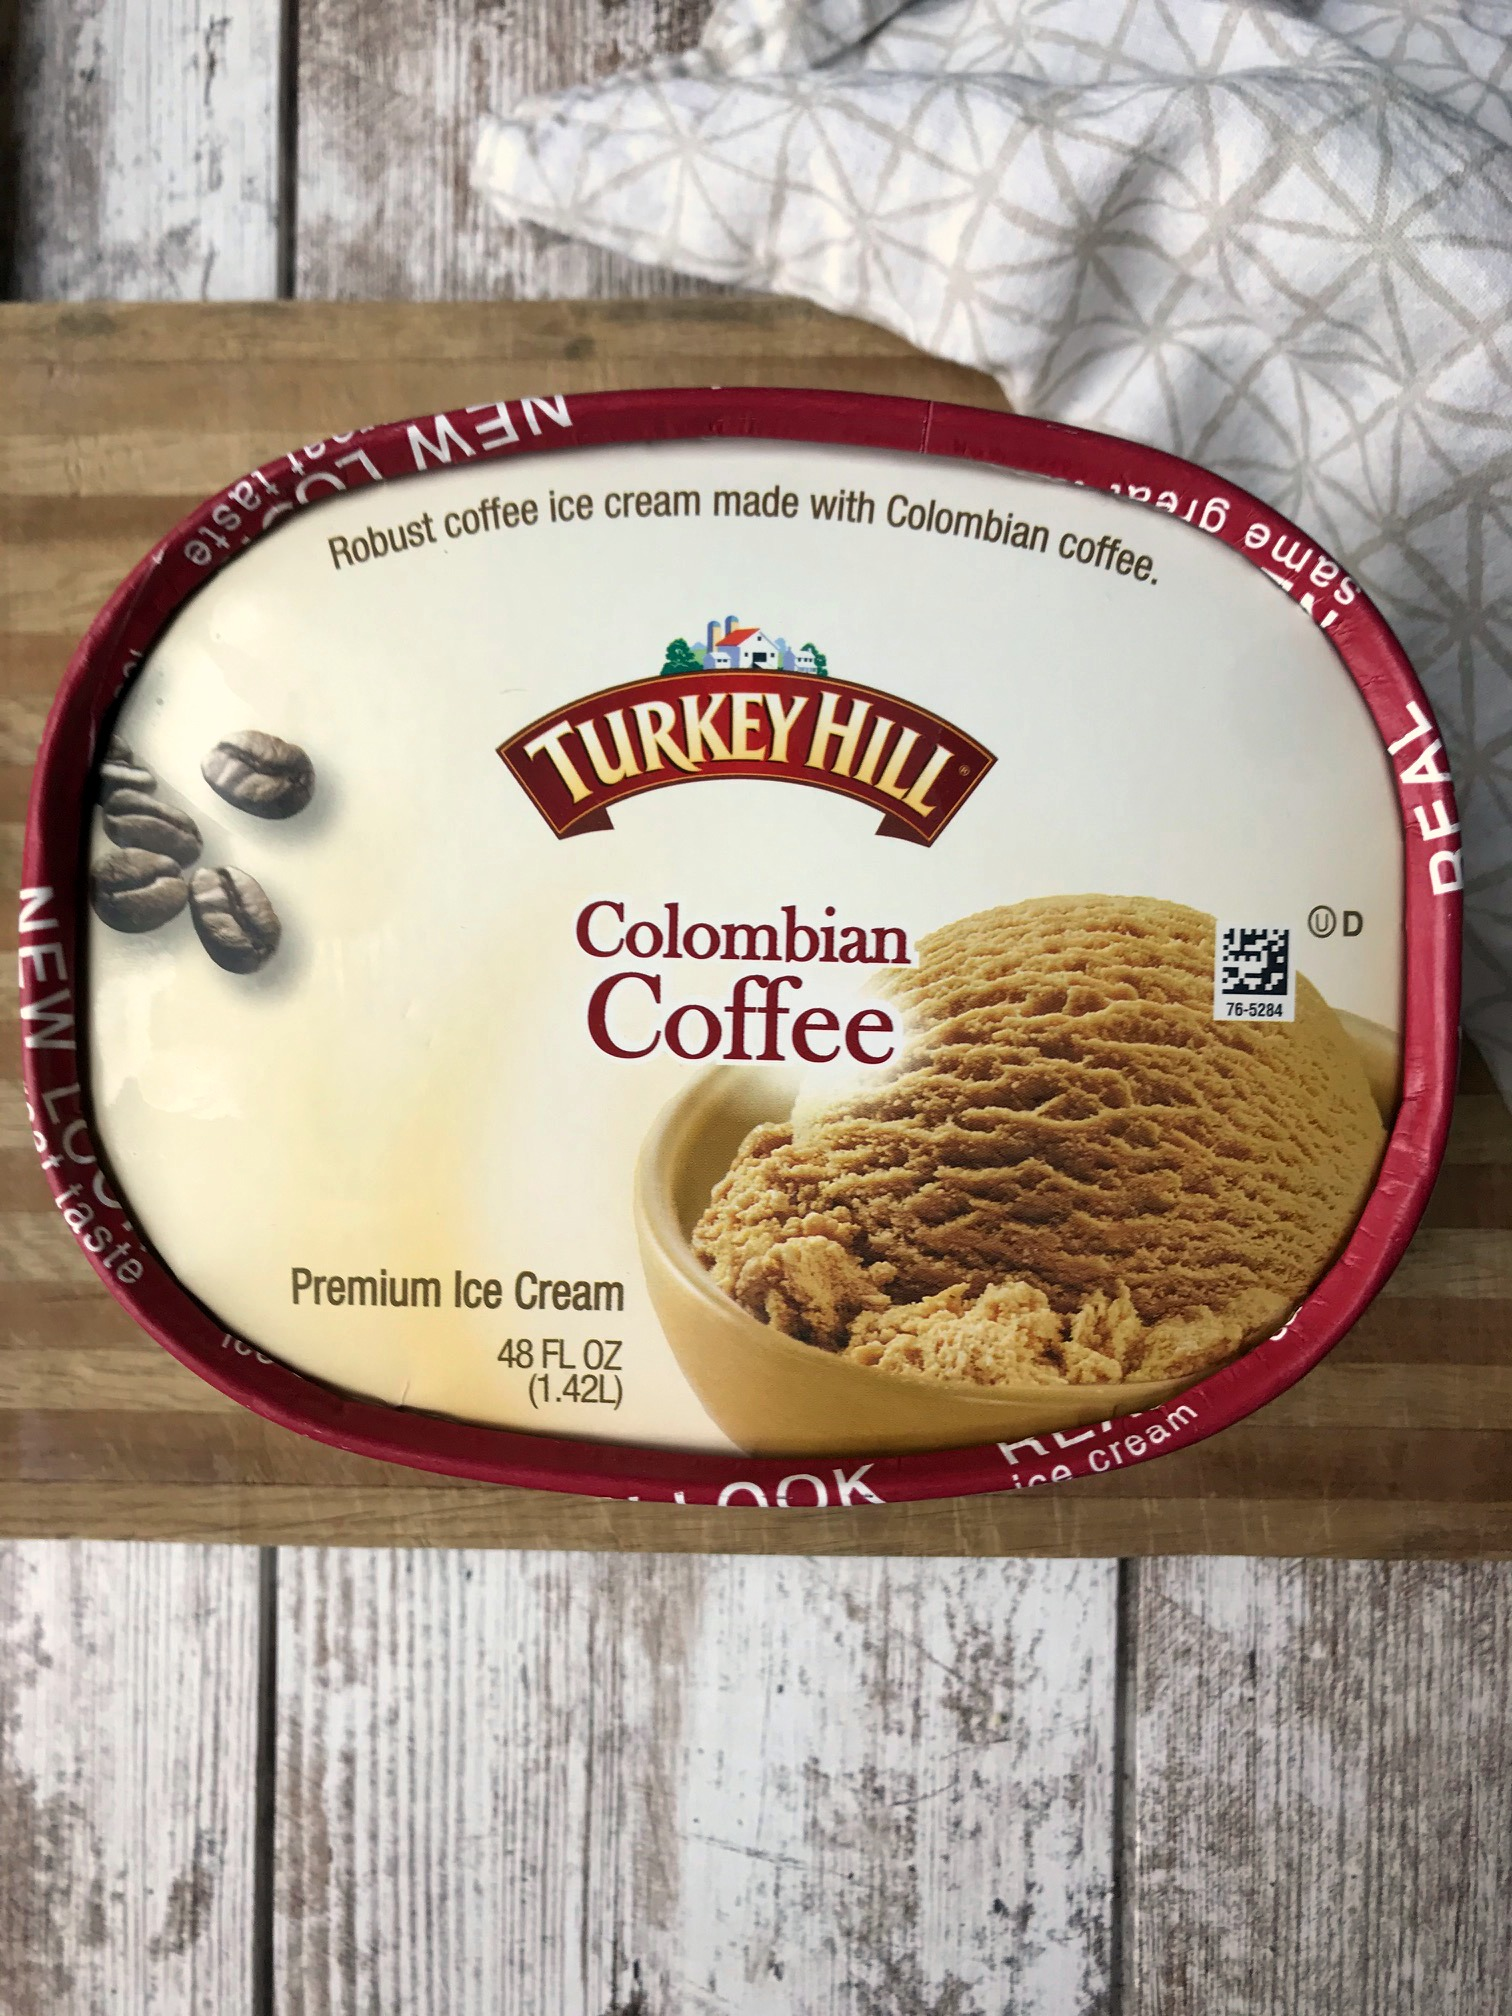 1.5 quart of Turkey Hill Coffee Ice Cream